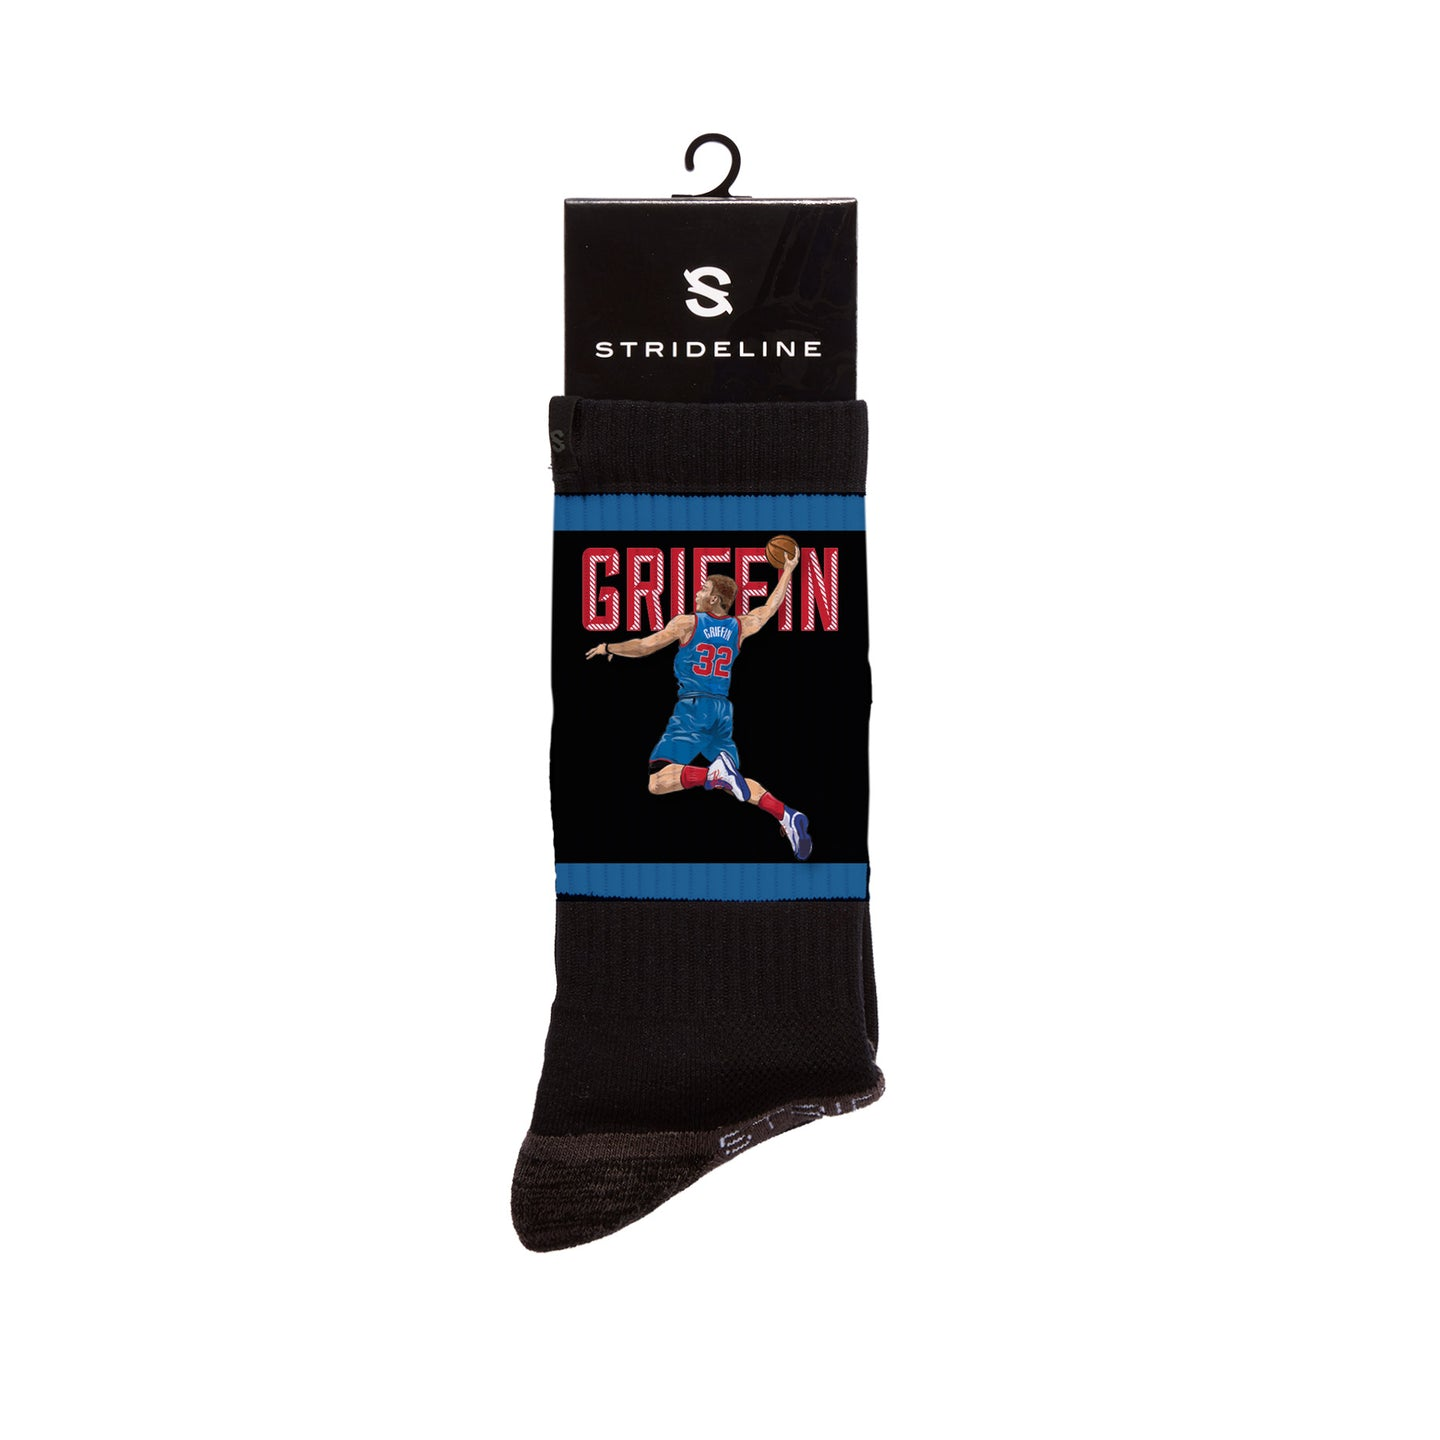 Blake Griffin Dunk Black Crew Socks